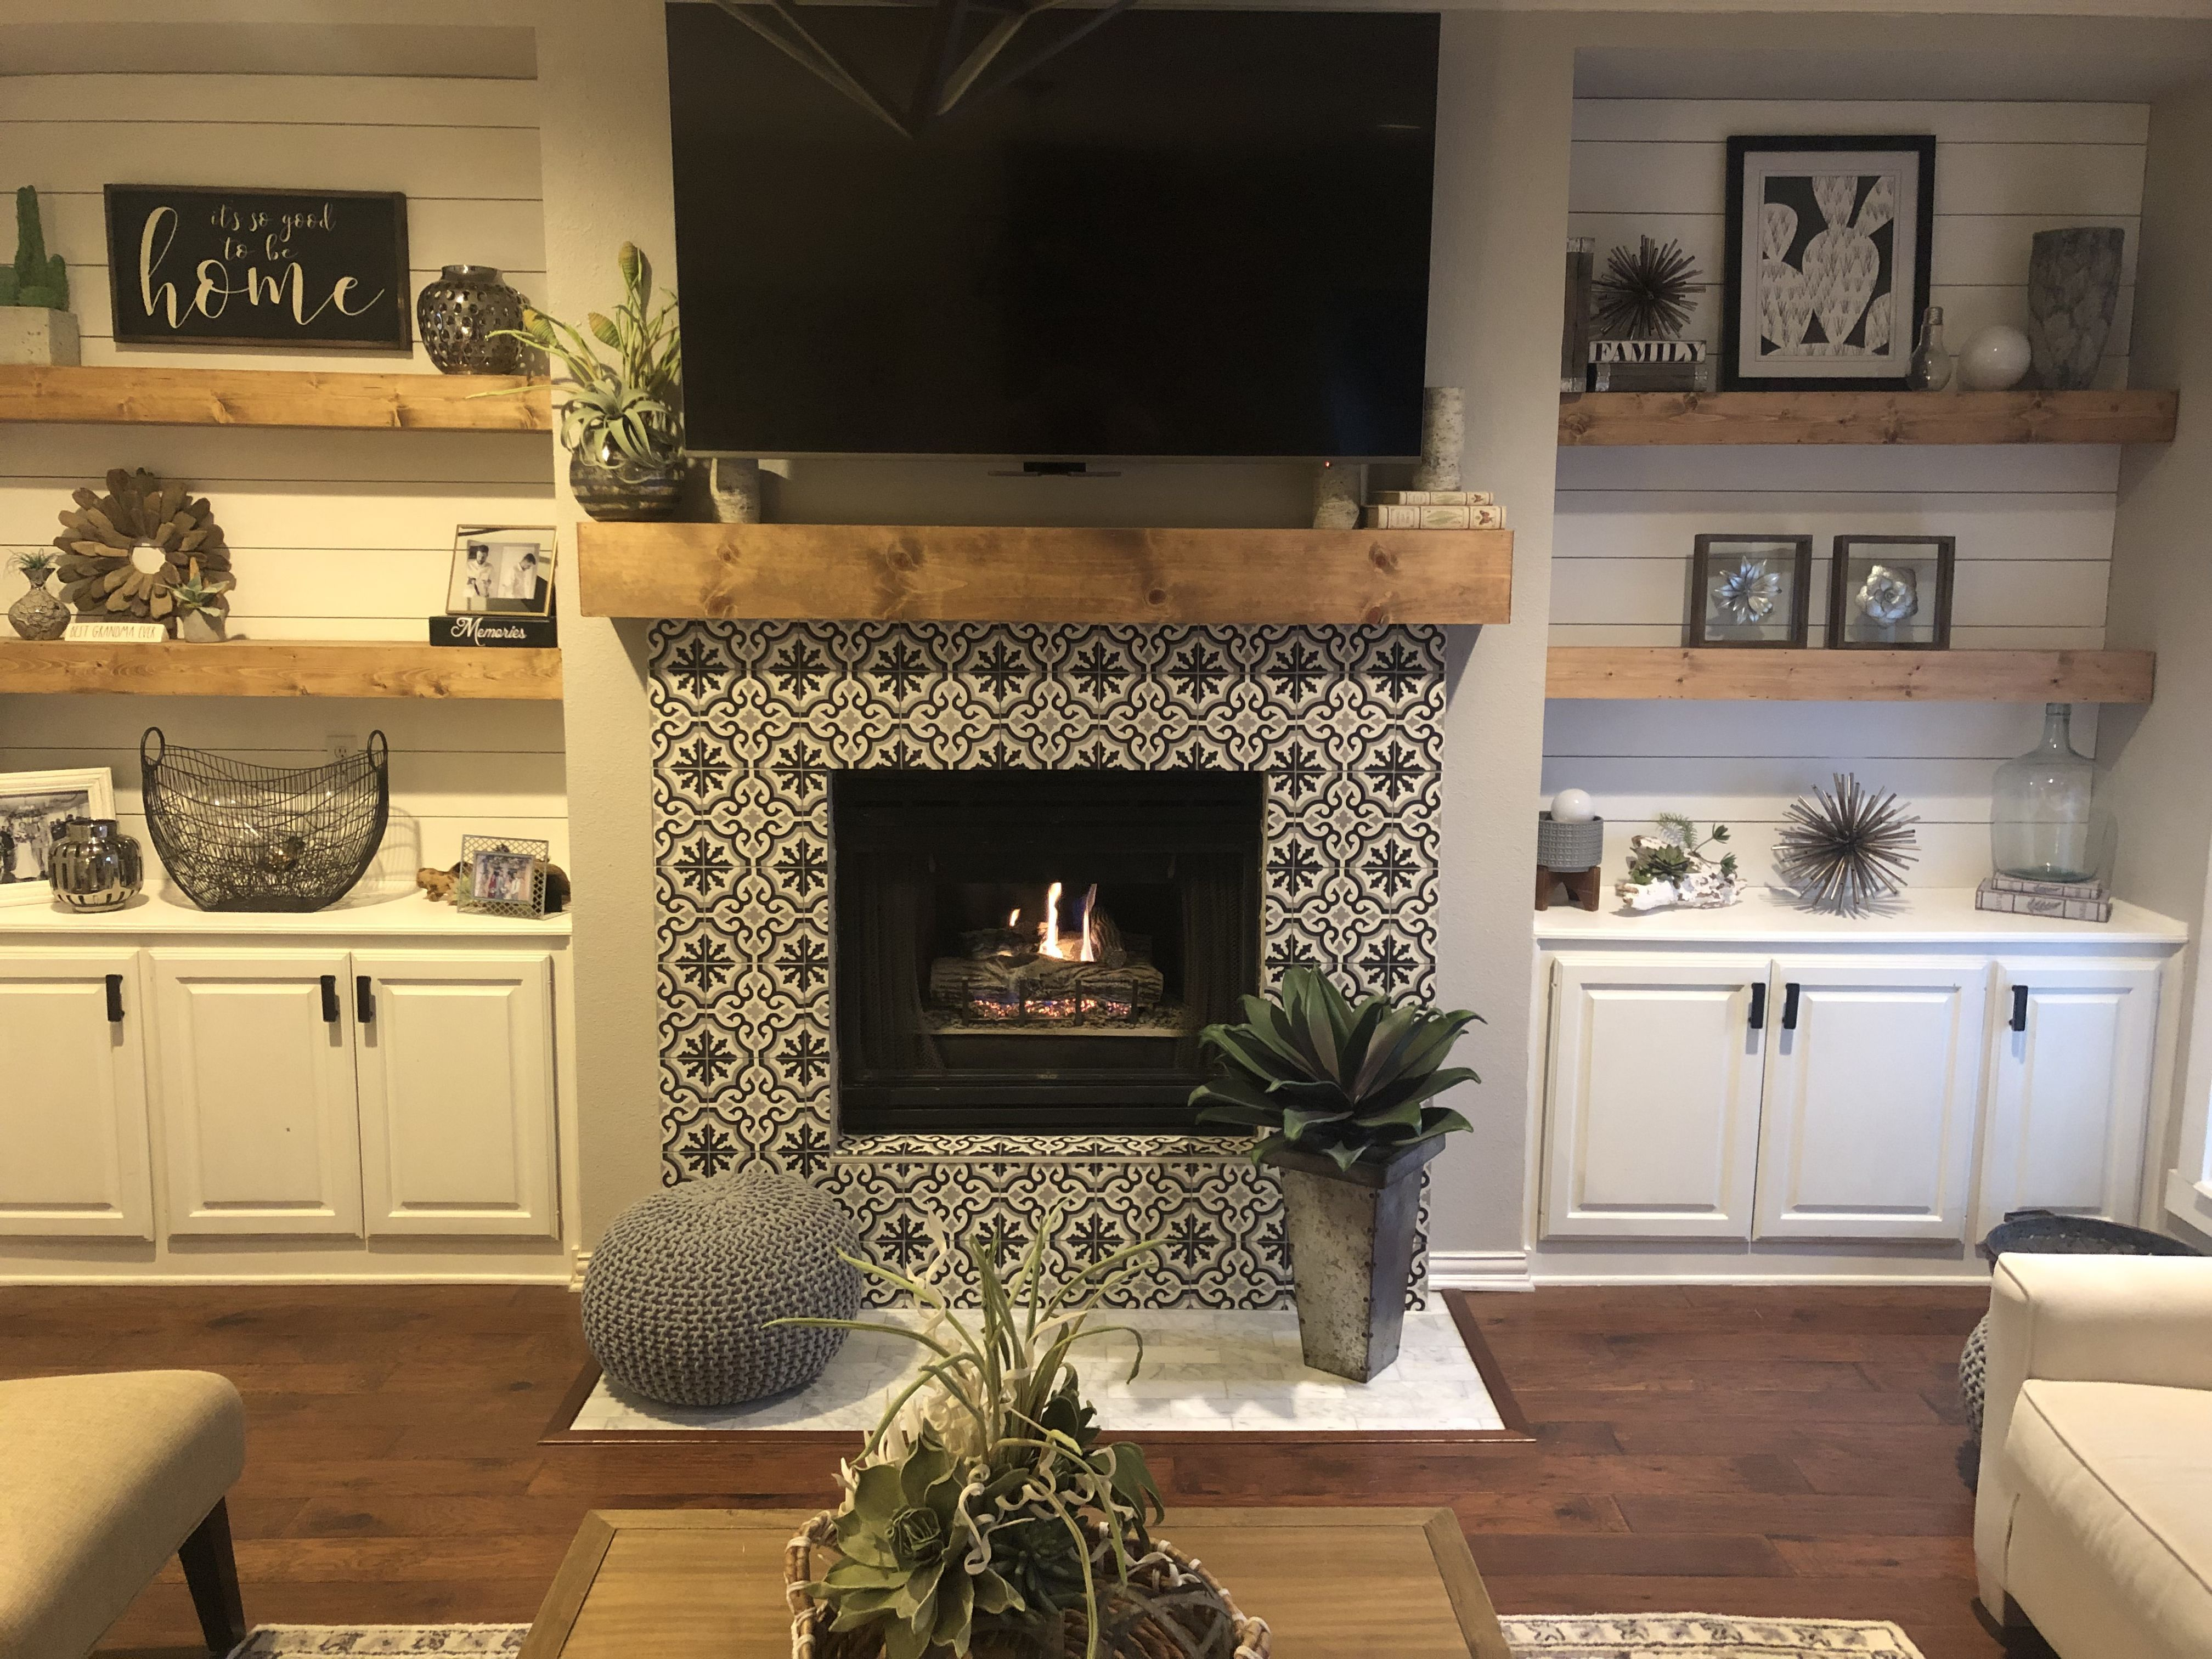 Fantastic Photos Fireplace Hearth Removal Style Updated Fireplace With Cement Tile Over Original Brick Remo In 2020 With Images Fireplace Makeover Build A Fireplace Brick Hearth